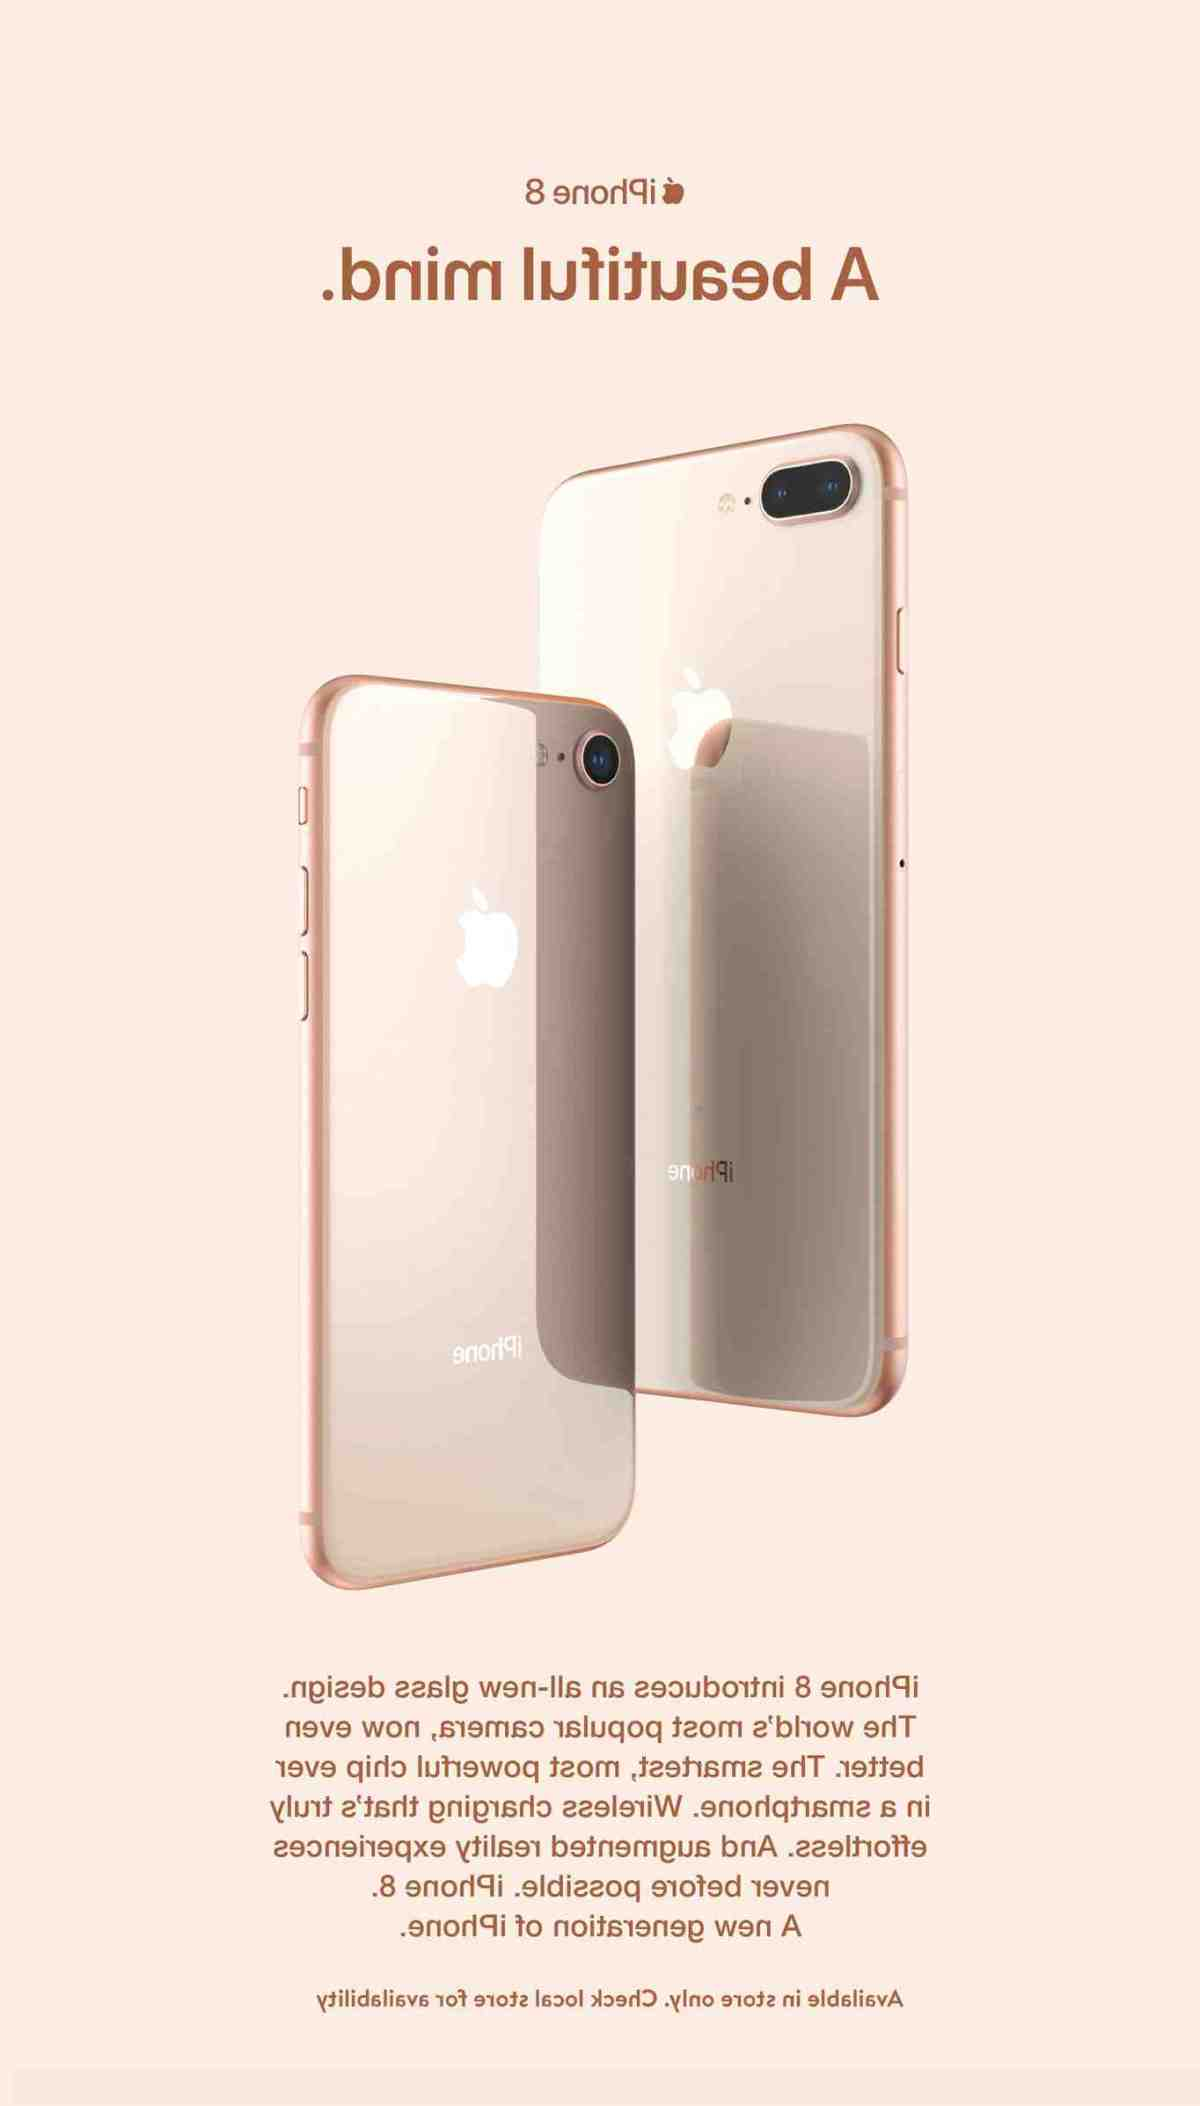 How much is the iPhone 8 plus right now?